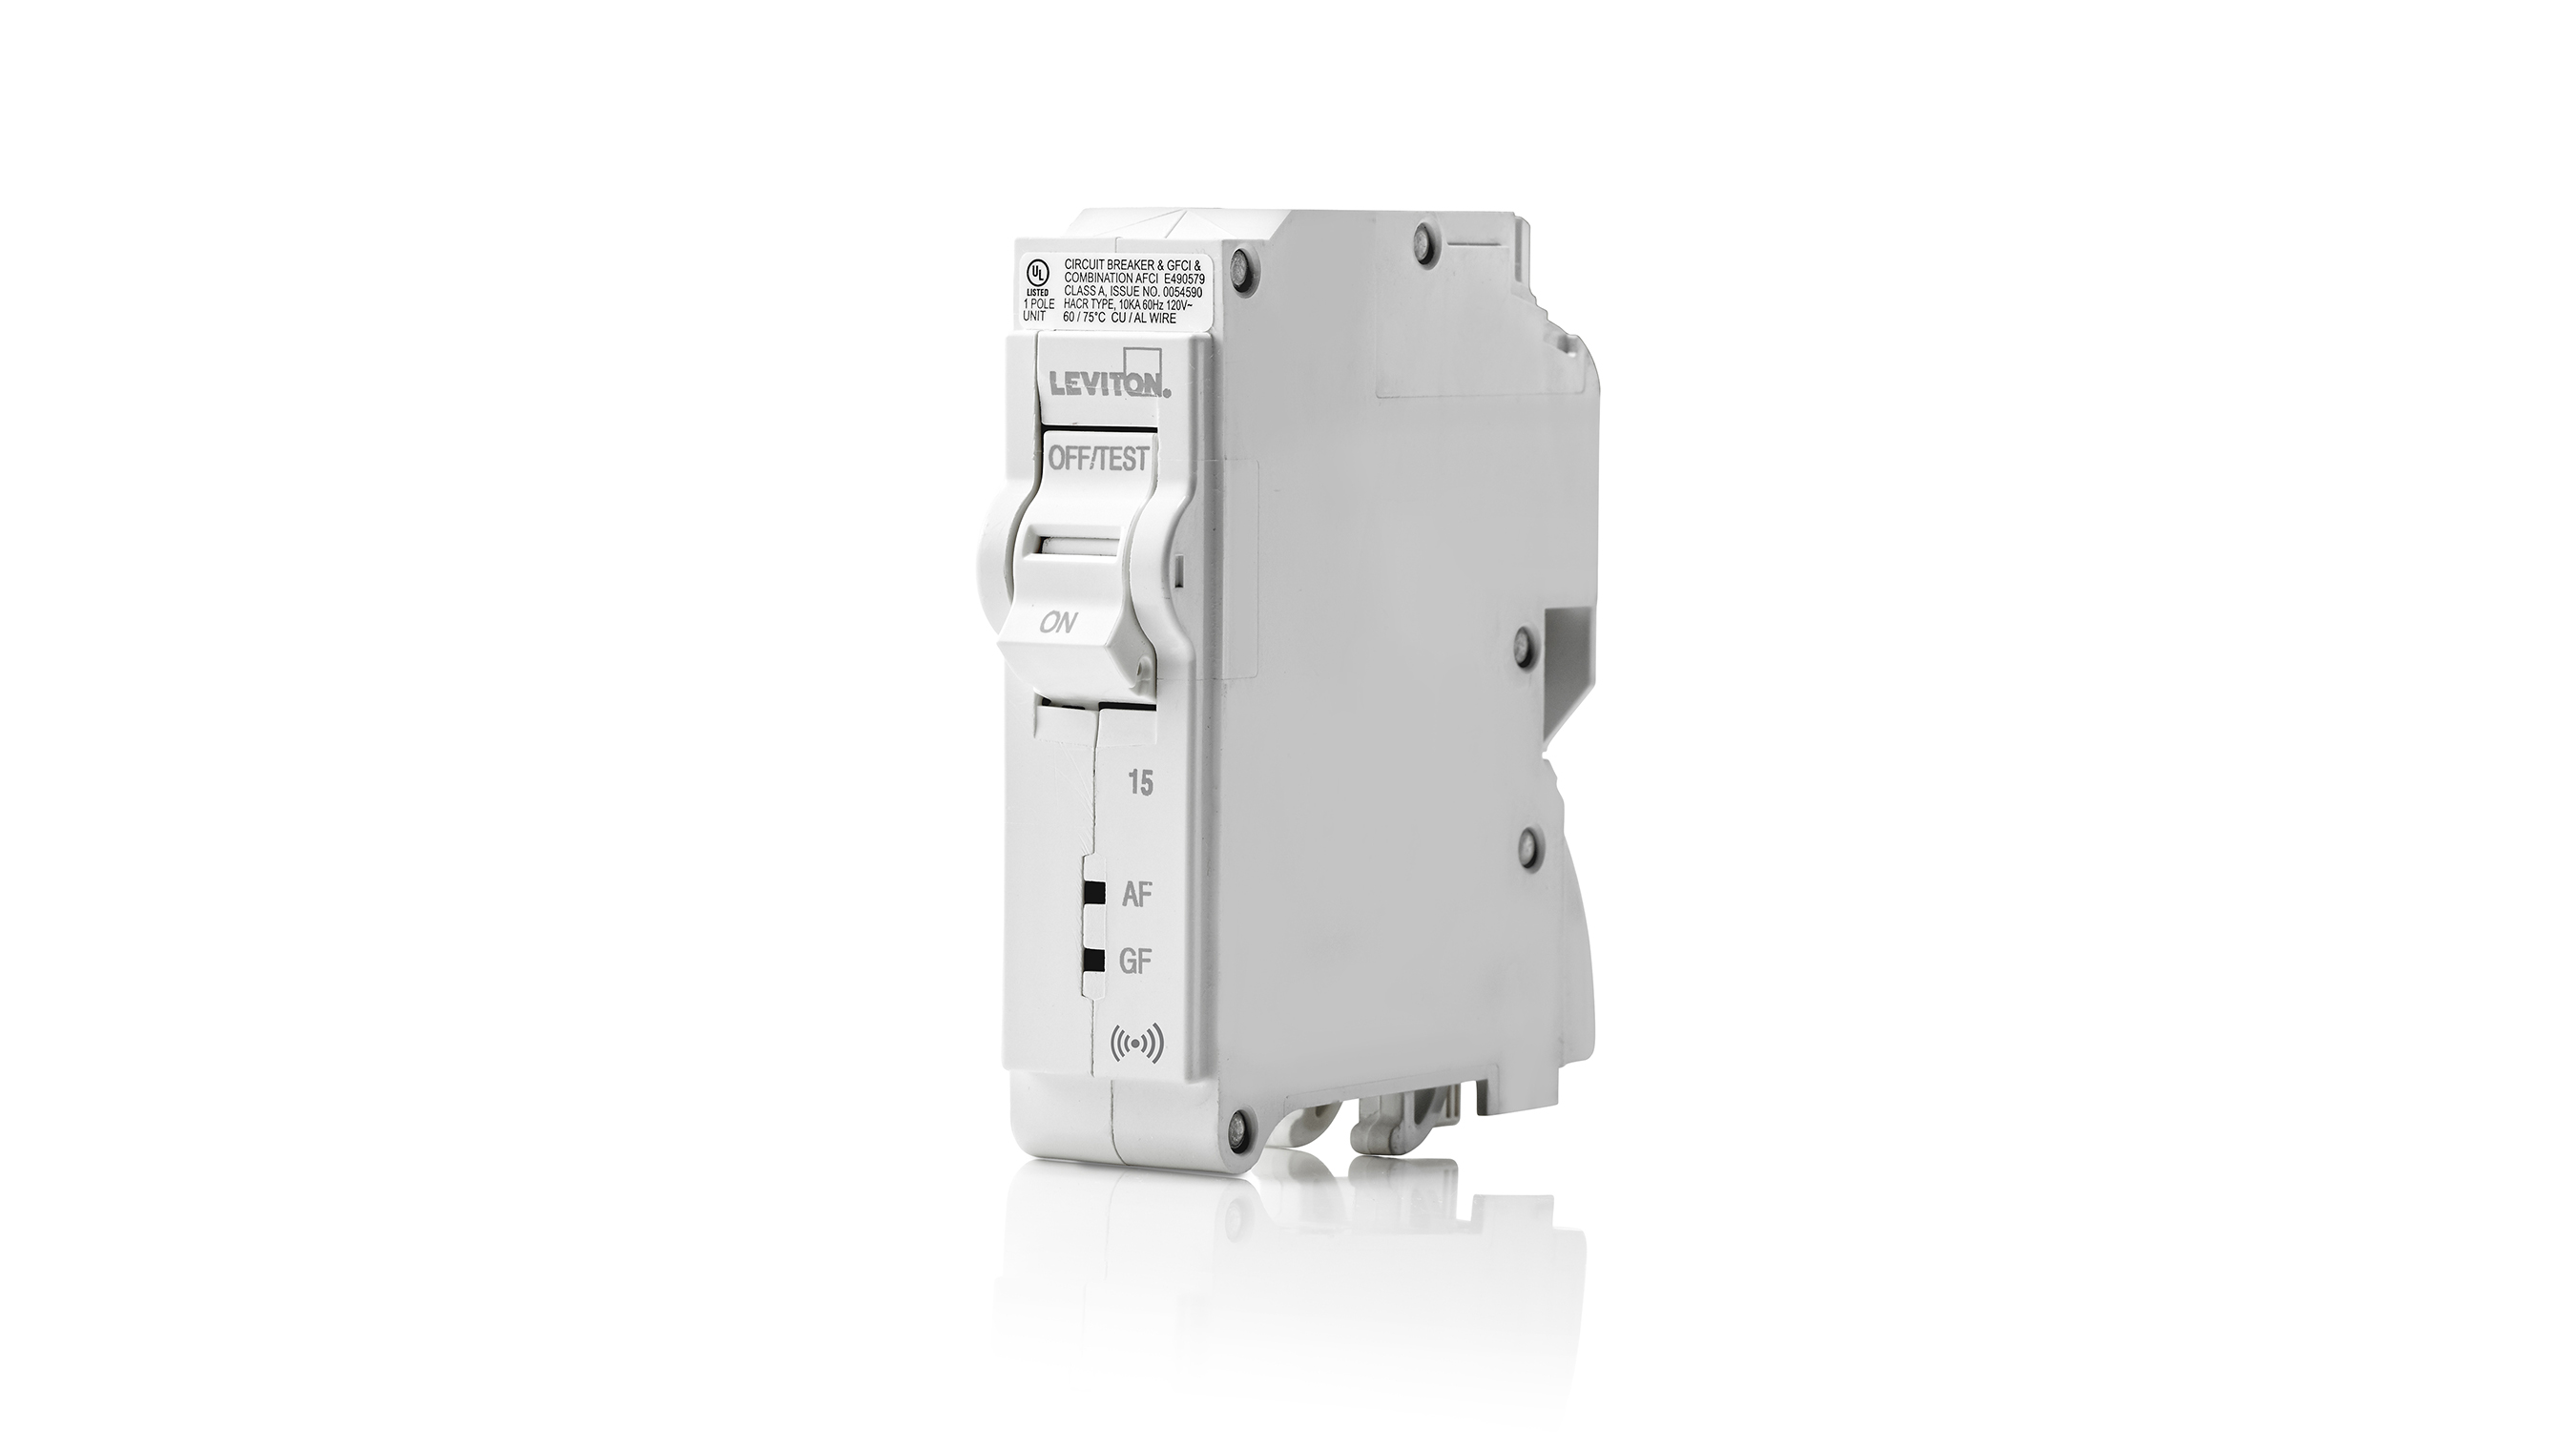 In addition to being the industry's first all plug-on load center with no more pig tails and a simpler installation process for builders and contractors, the new Leviton Load Center has the only circuit breakers with patented GFCI lockout technology that exceeds existing UL safety standards. No other circuit breaker provides this level of protection.